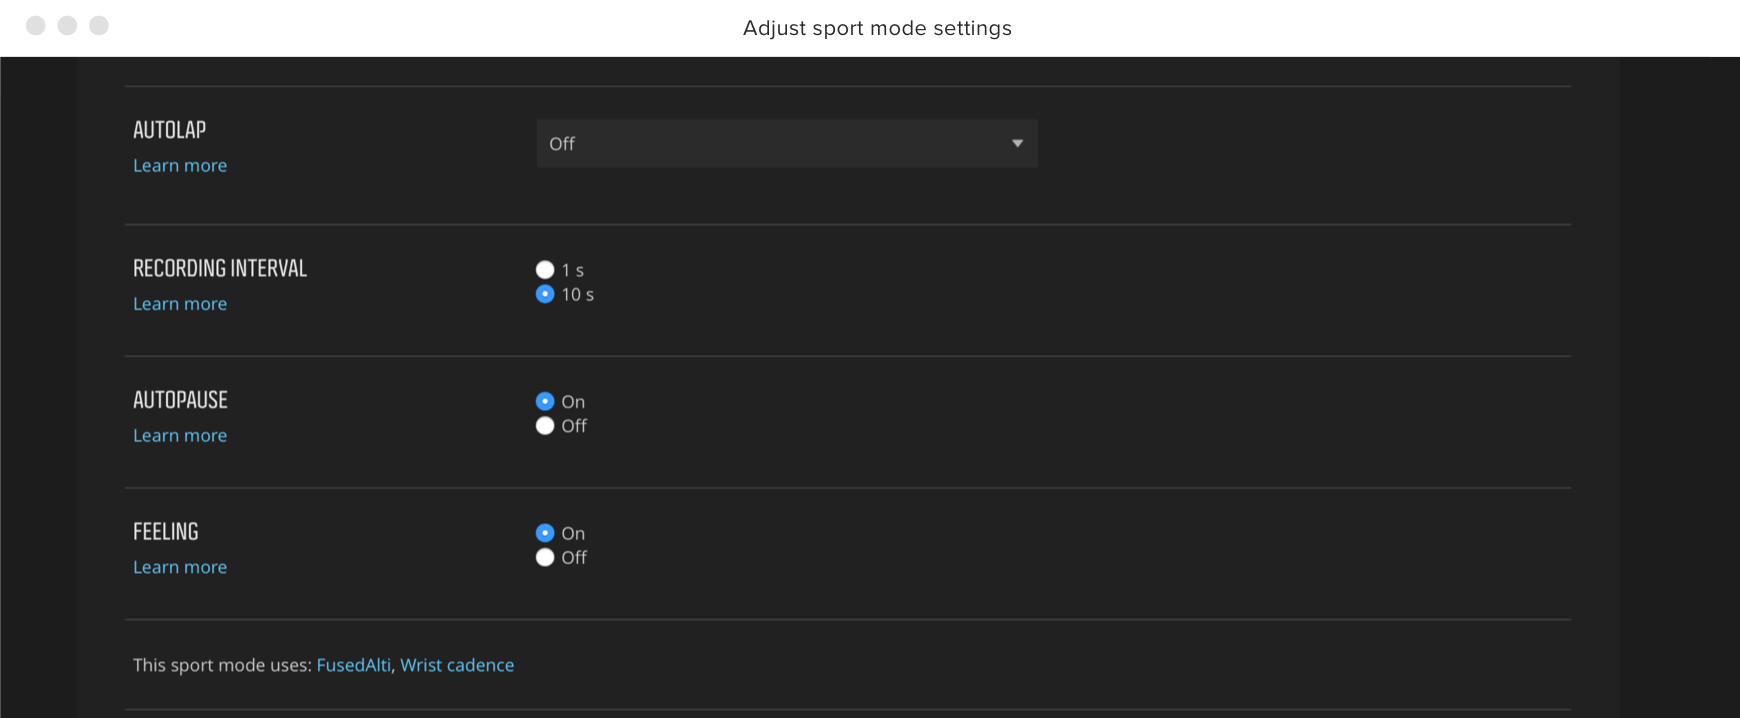 Customize the sport mode settings, too